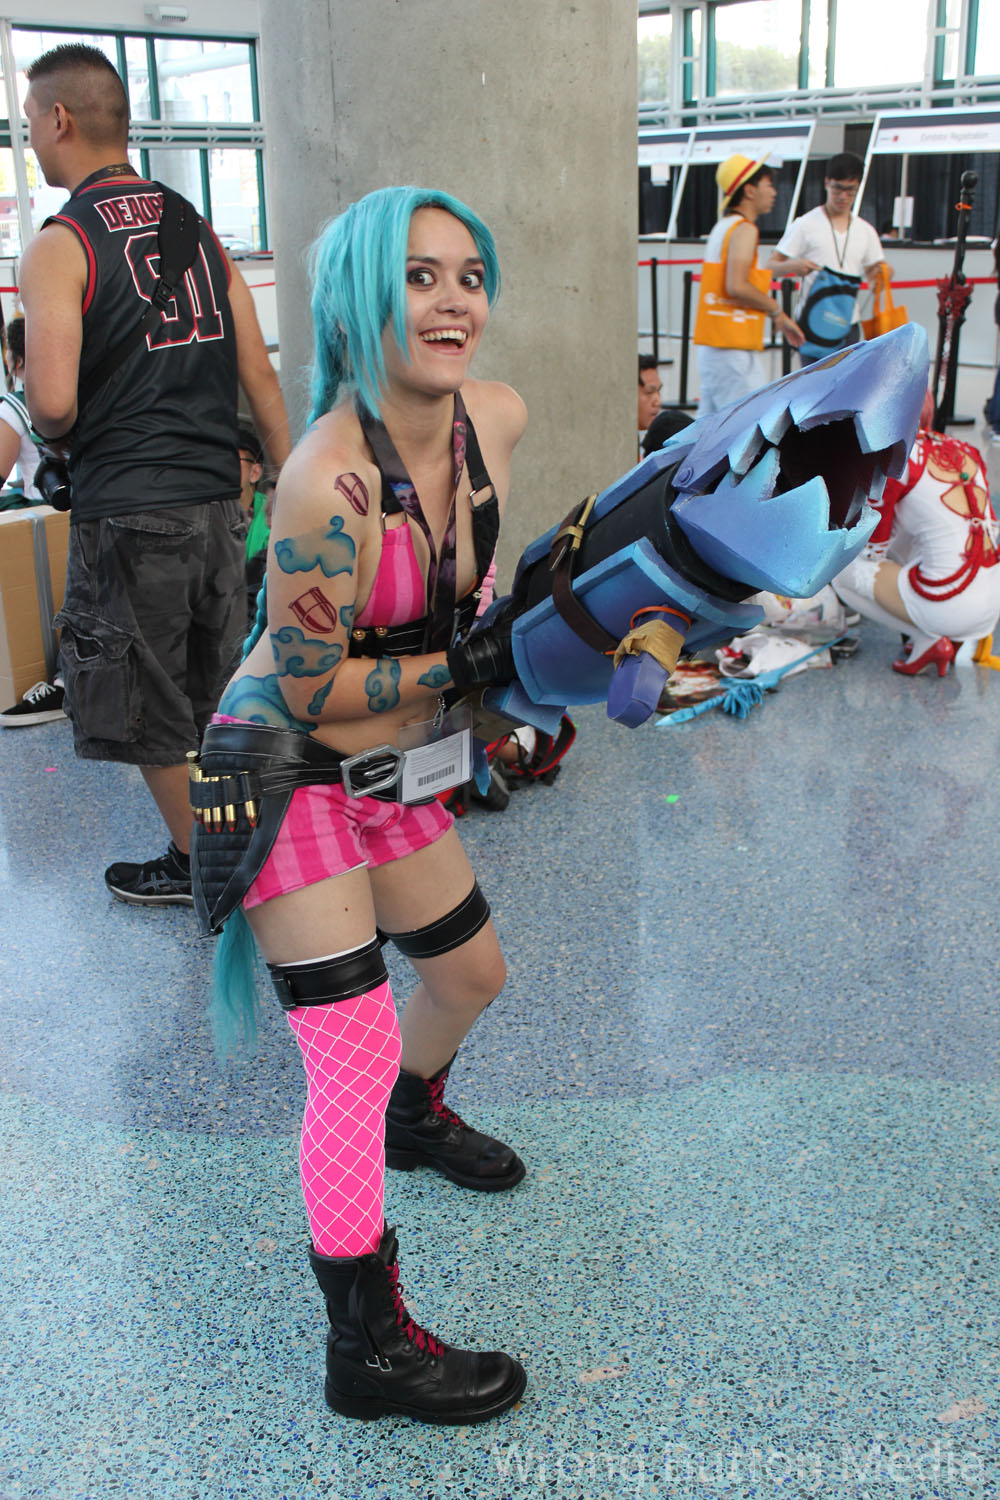 16 of the Best League of Legends Cosplayers at Anime Expo ...